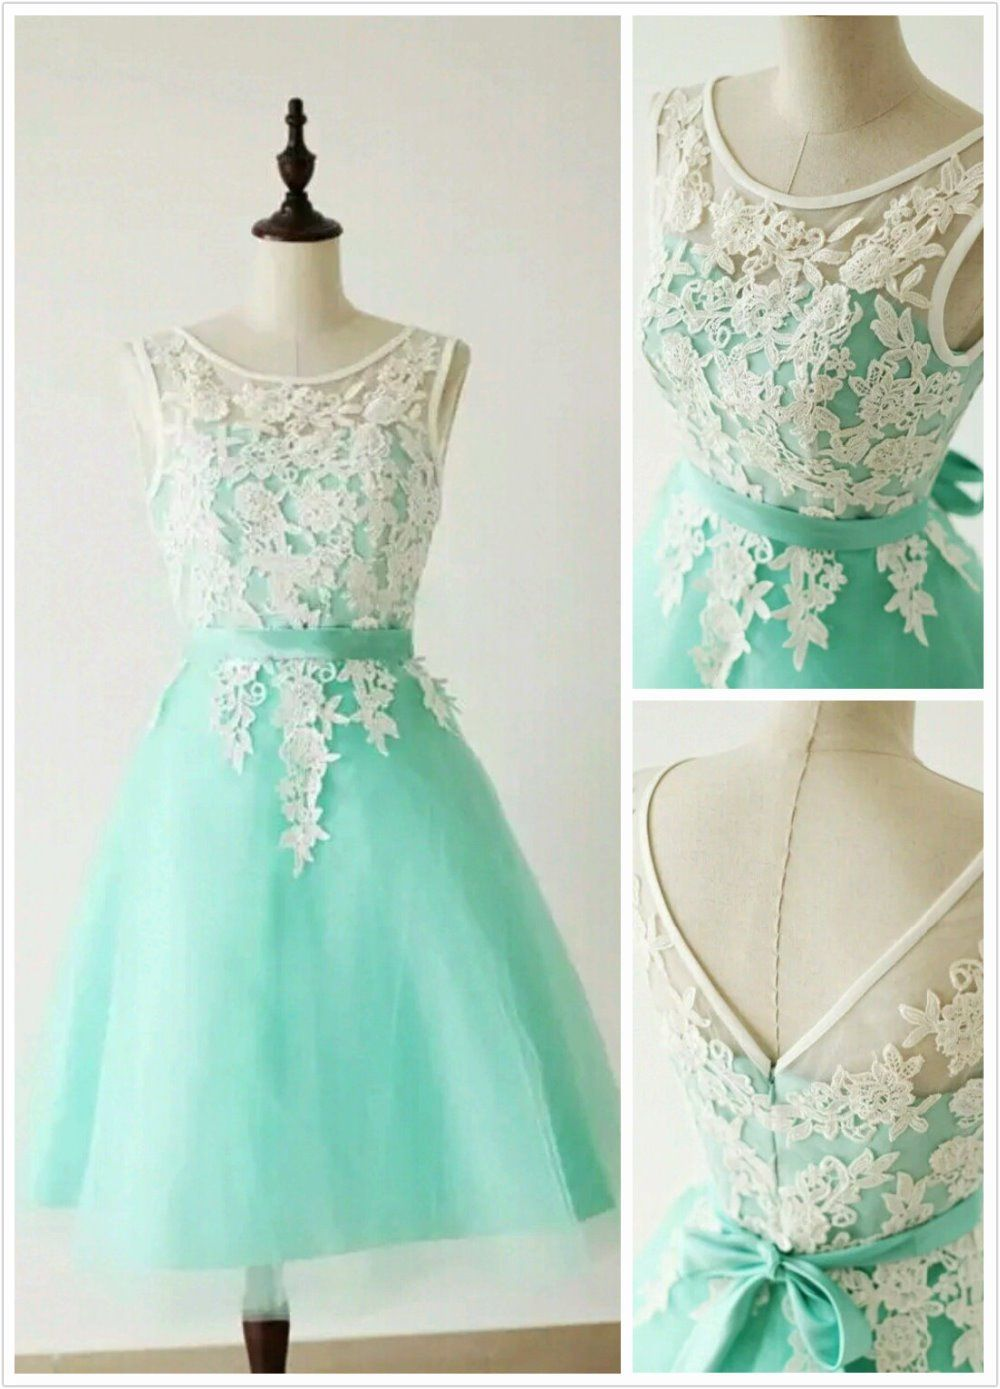 Aqua mint, lace applique, high quality short bridesmaid dress ...